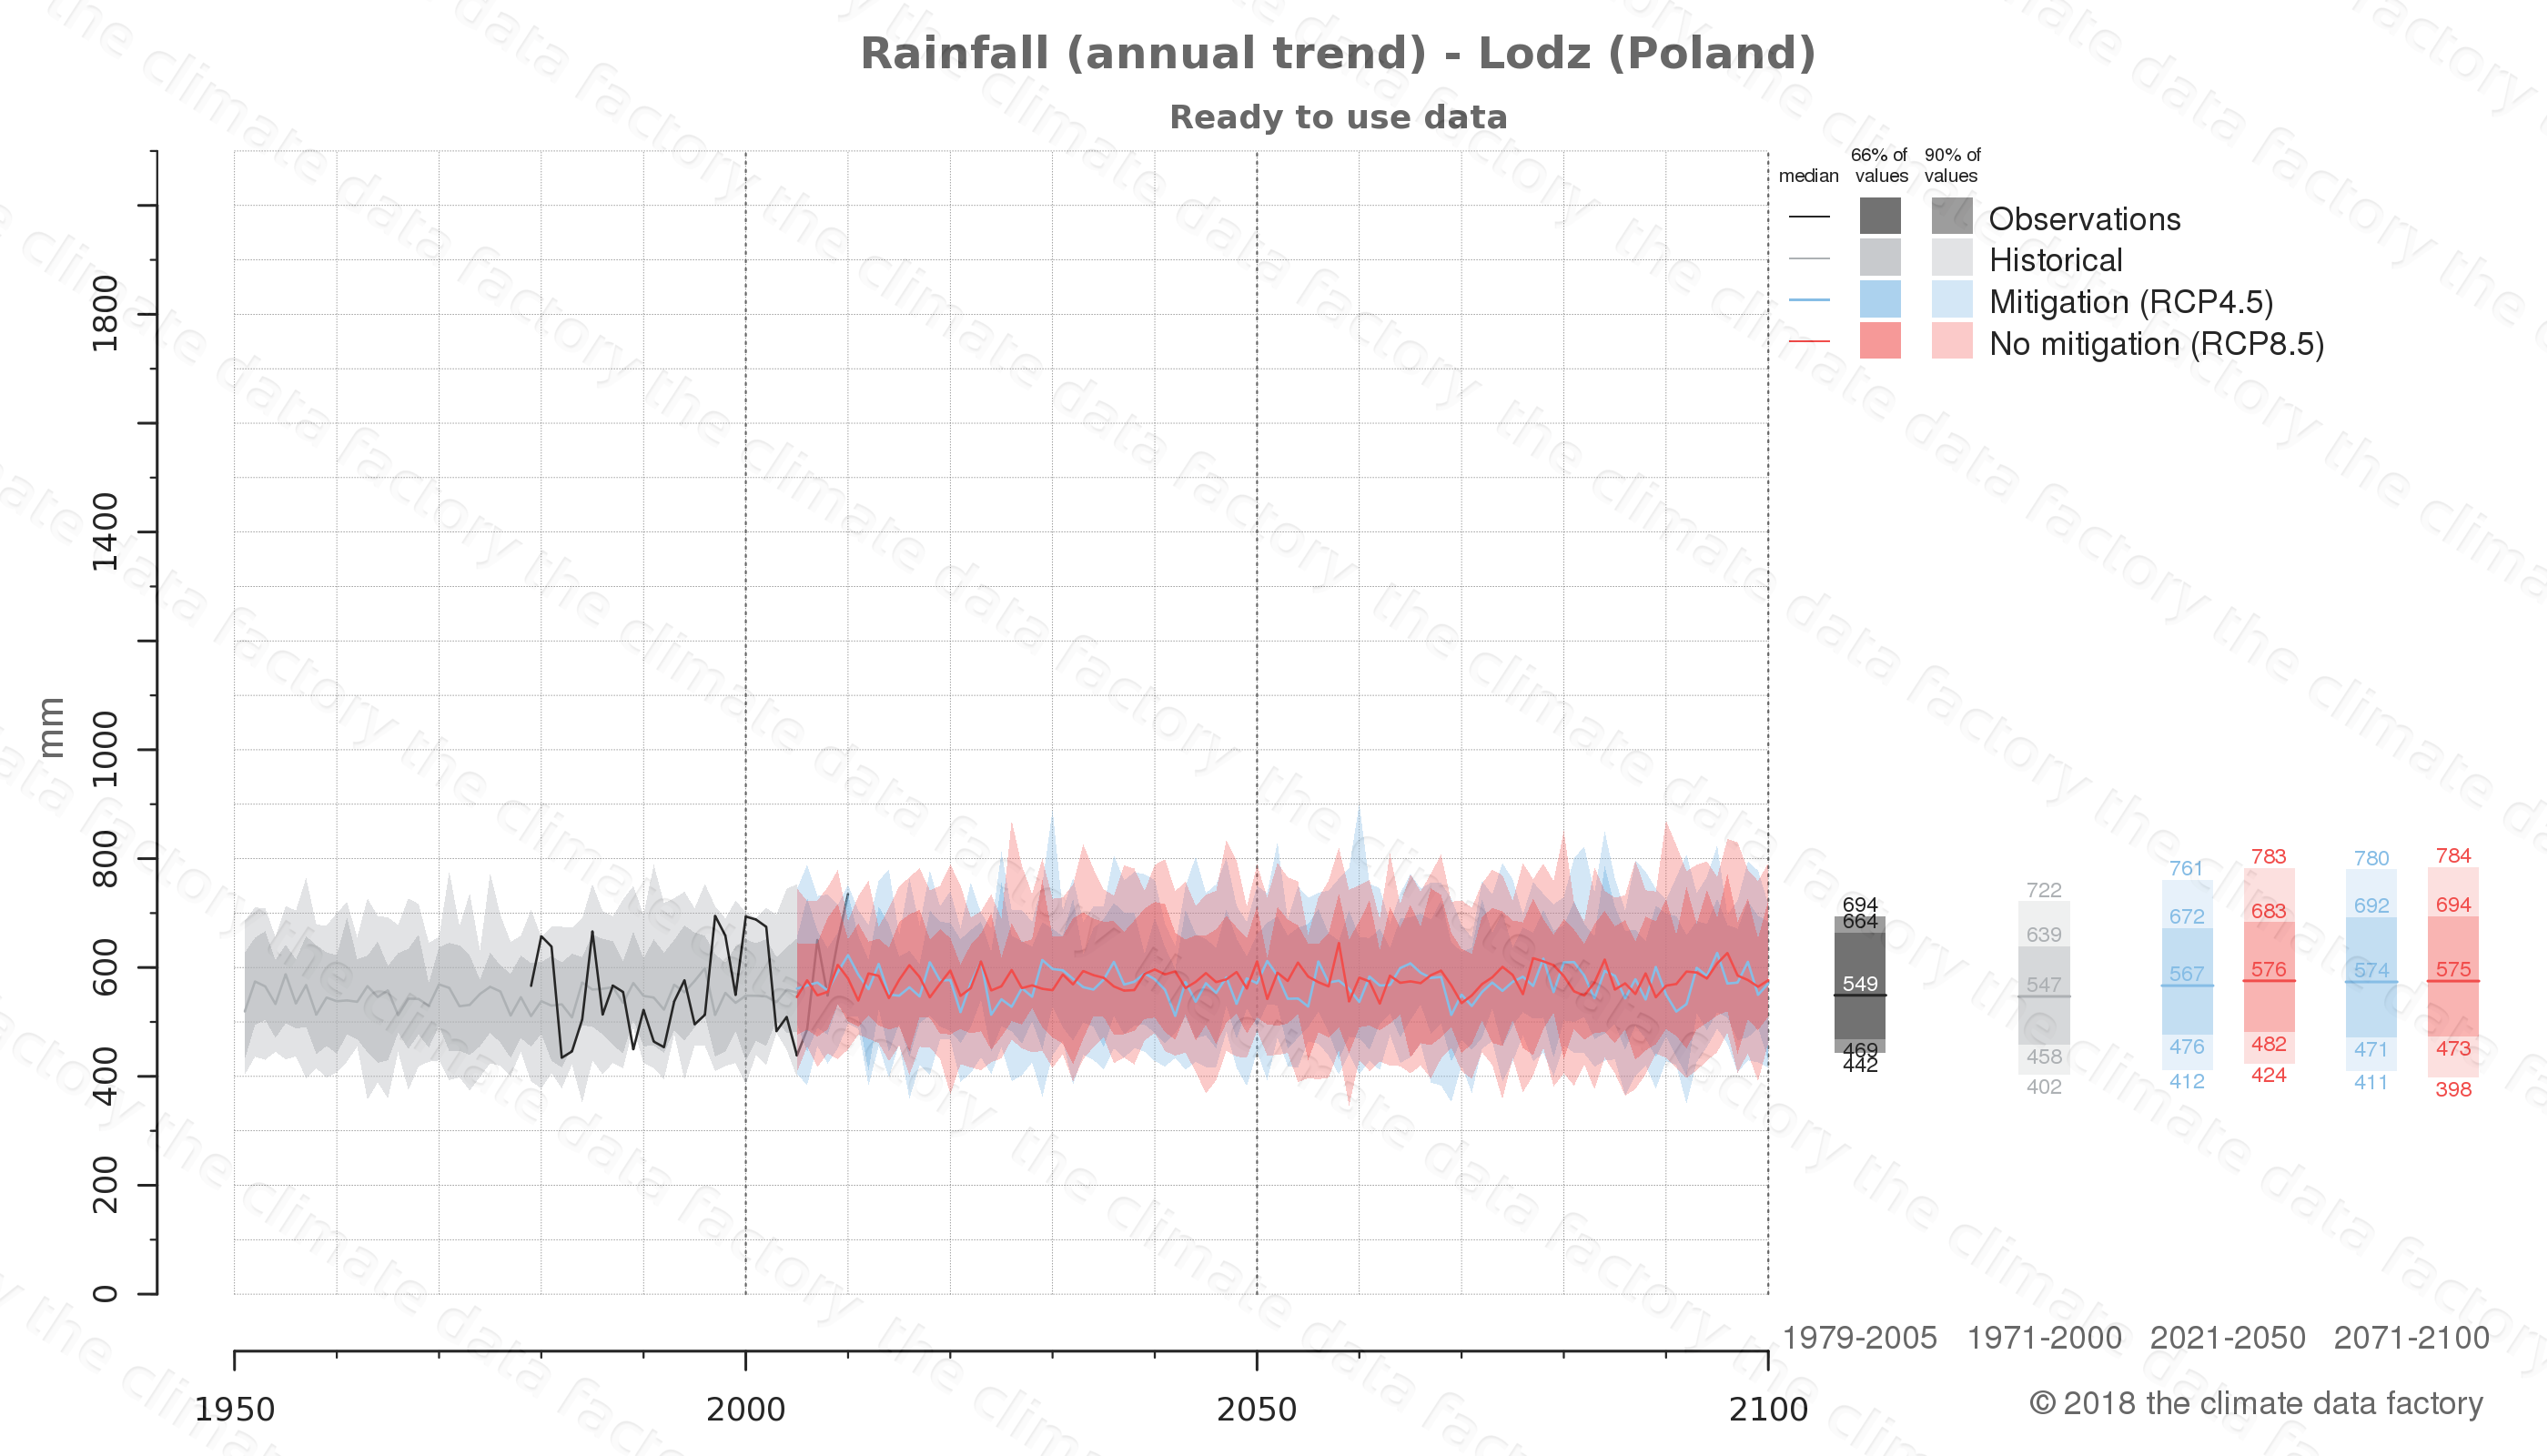 climate change data policy adaptation climate graph city data rainfall lodz poland